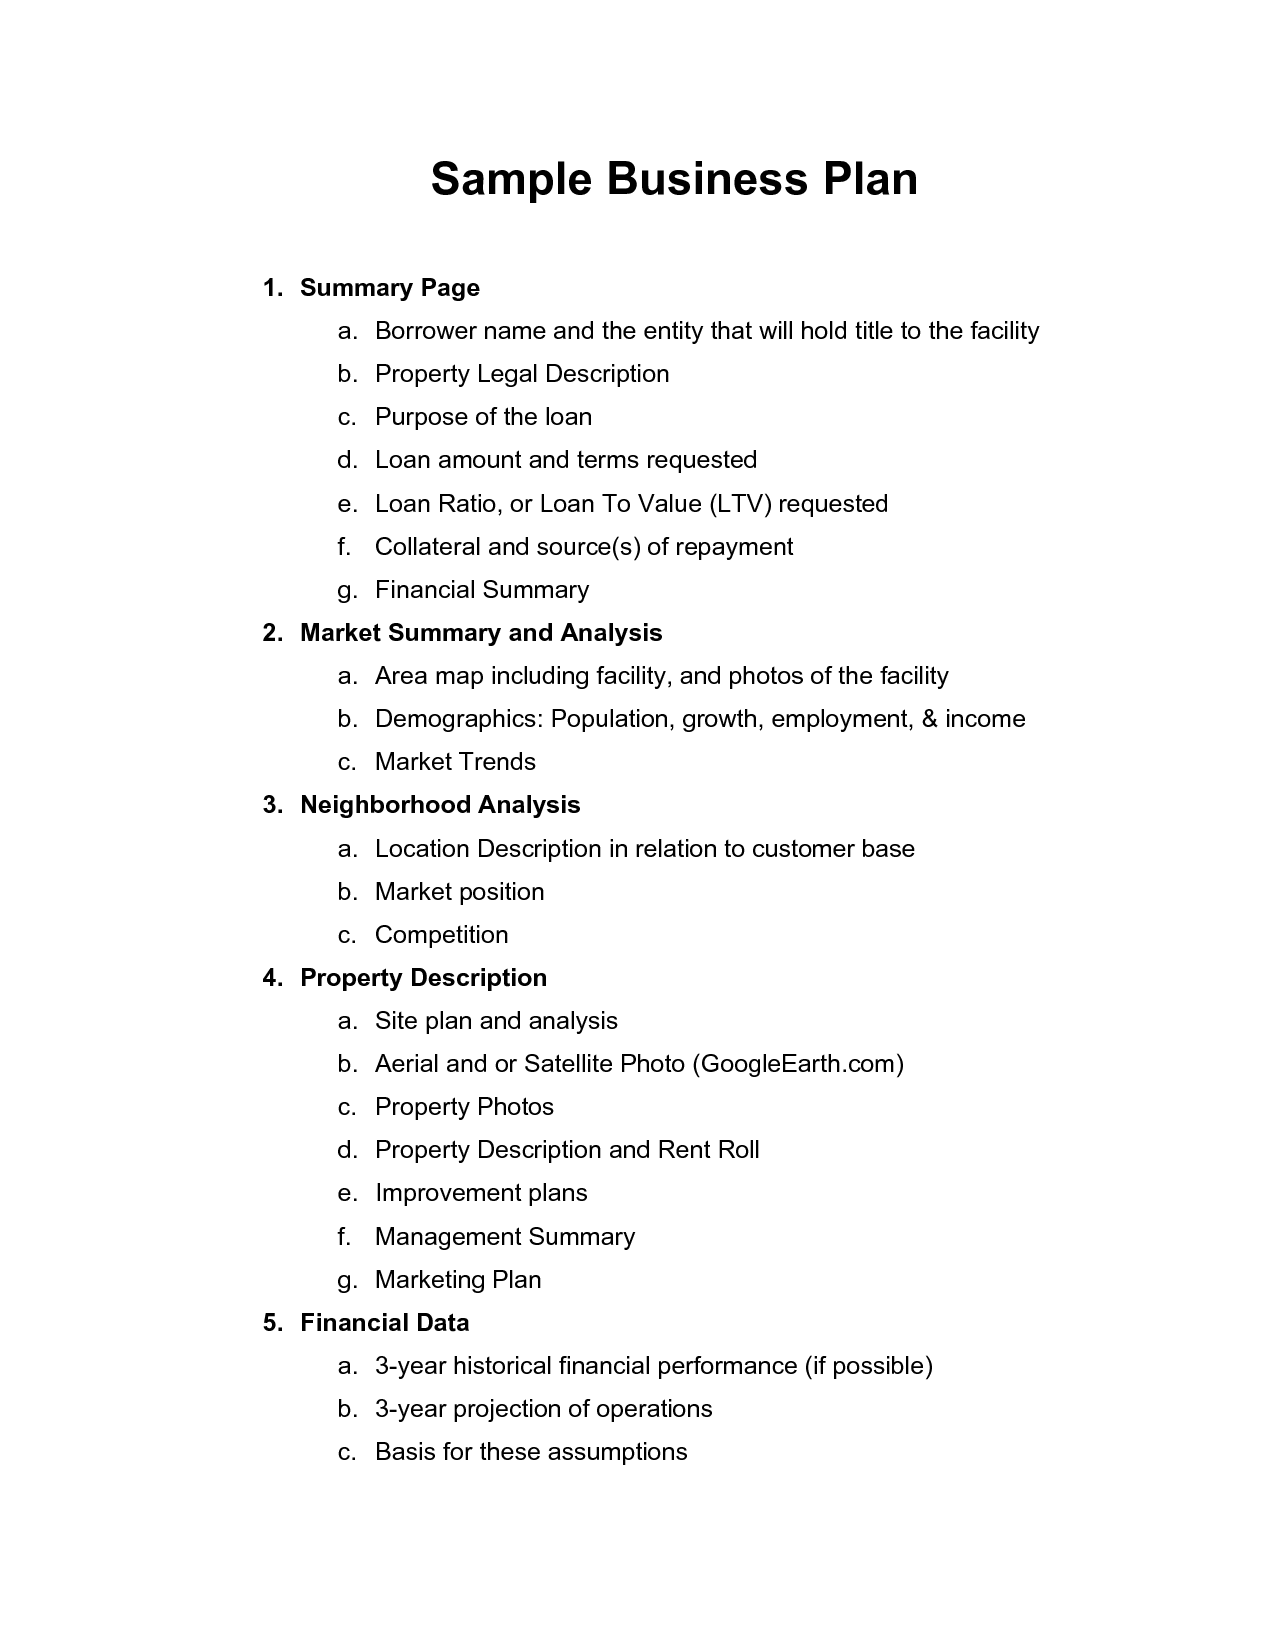 Ecommerce Business Plan Template Doc | Cleavercraver.com